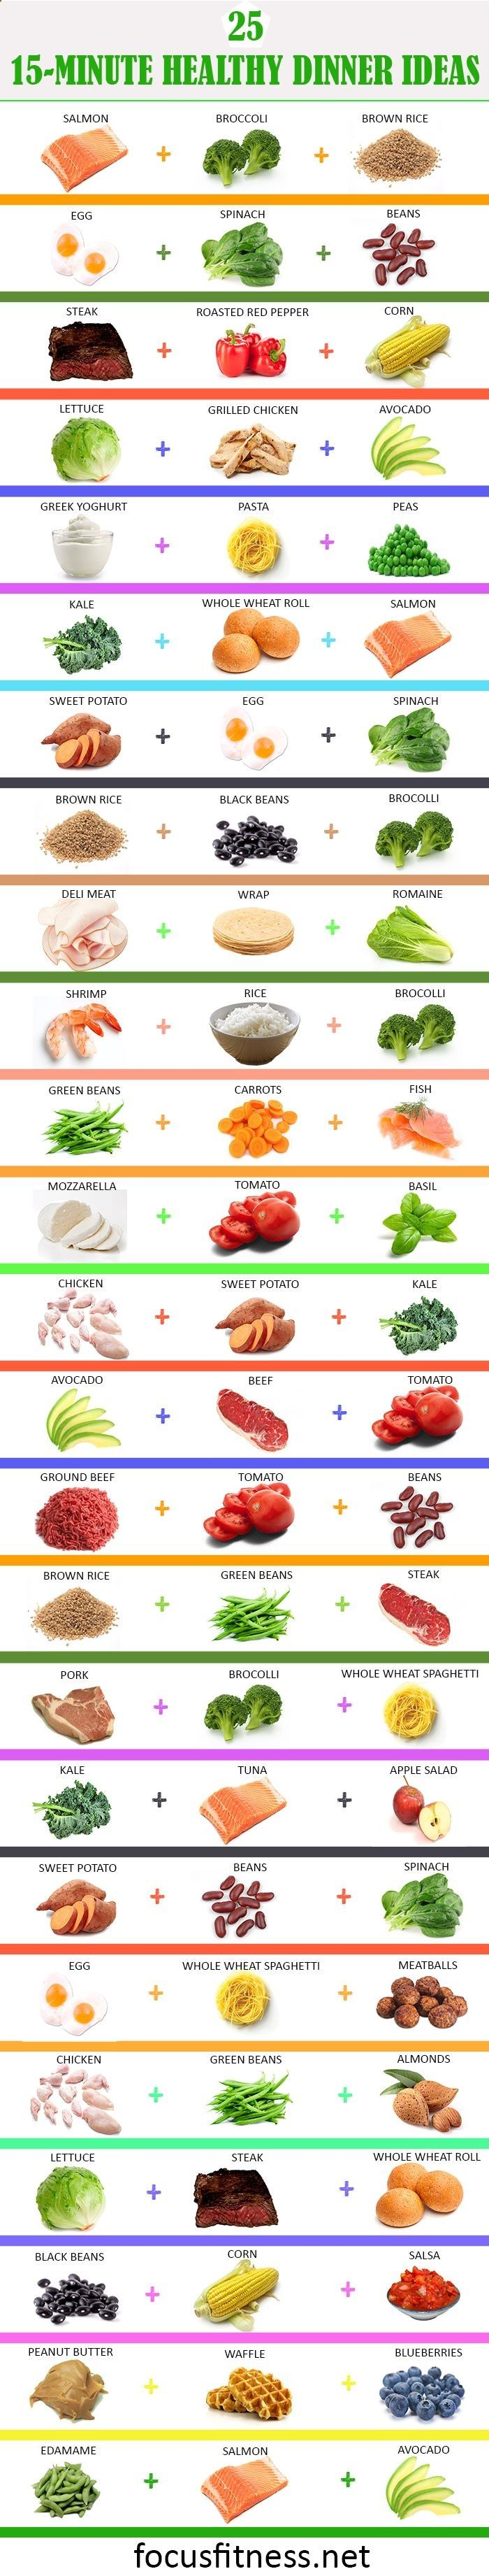 Weight loss diet plans australia image 9